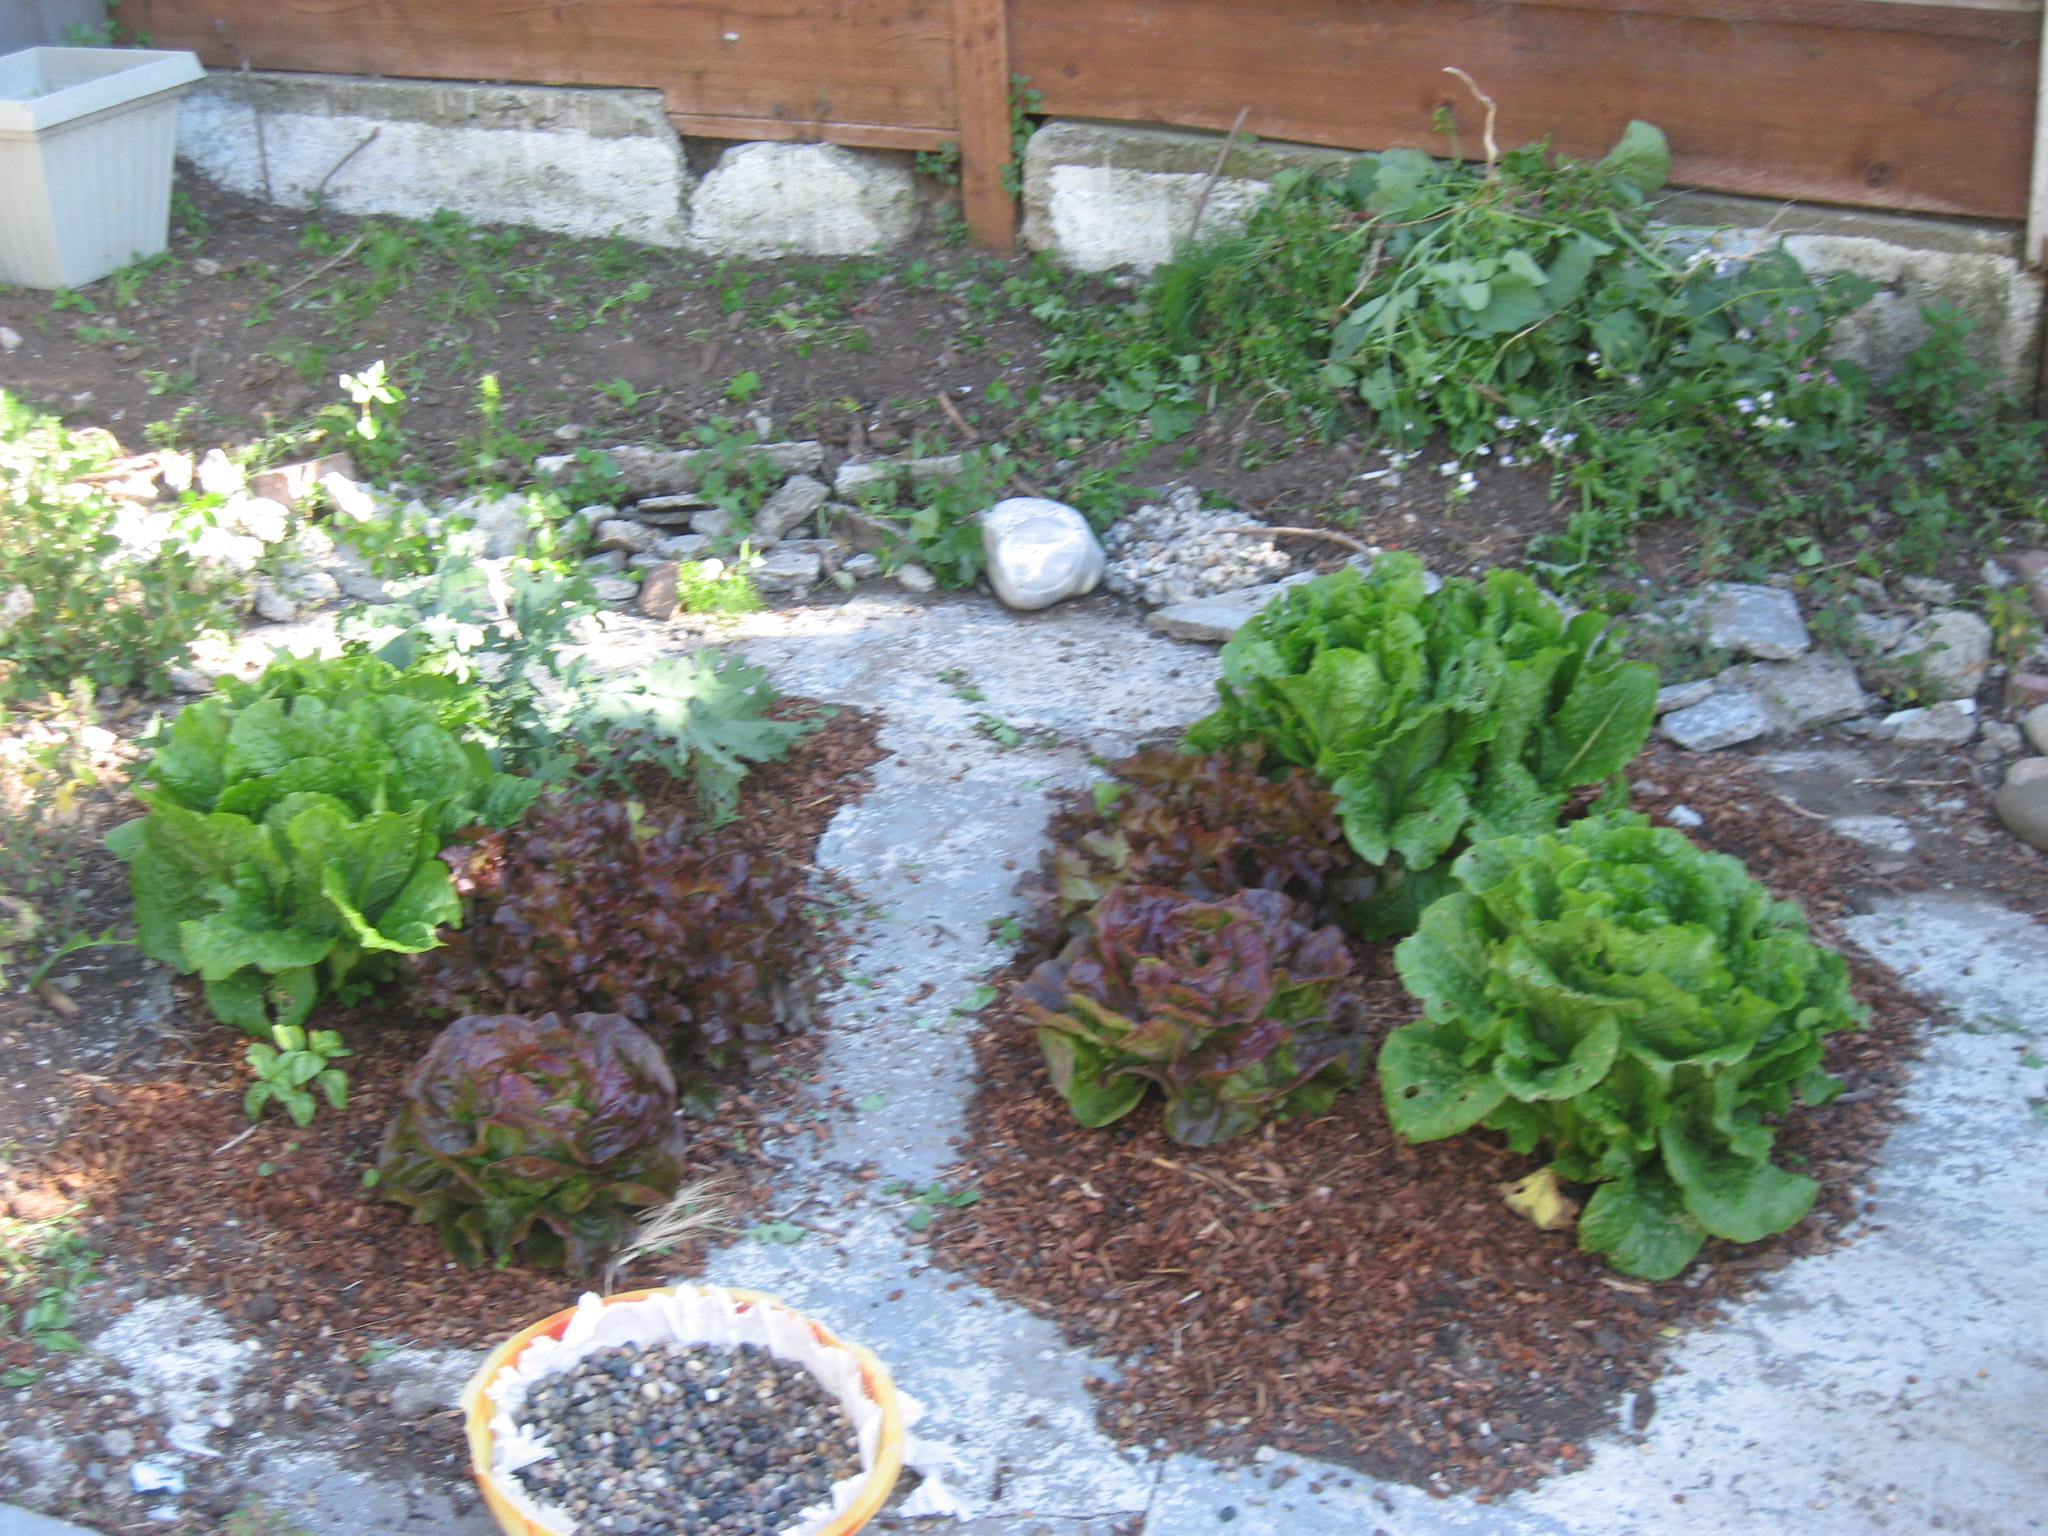 More lettuce and kale!